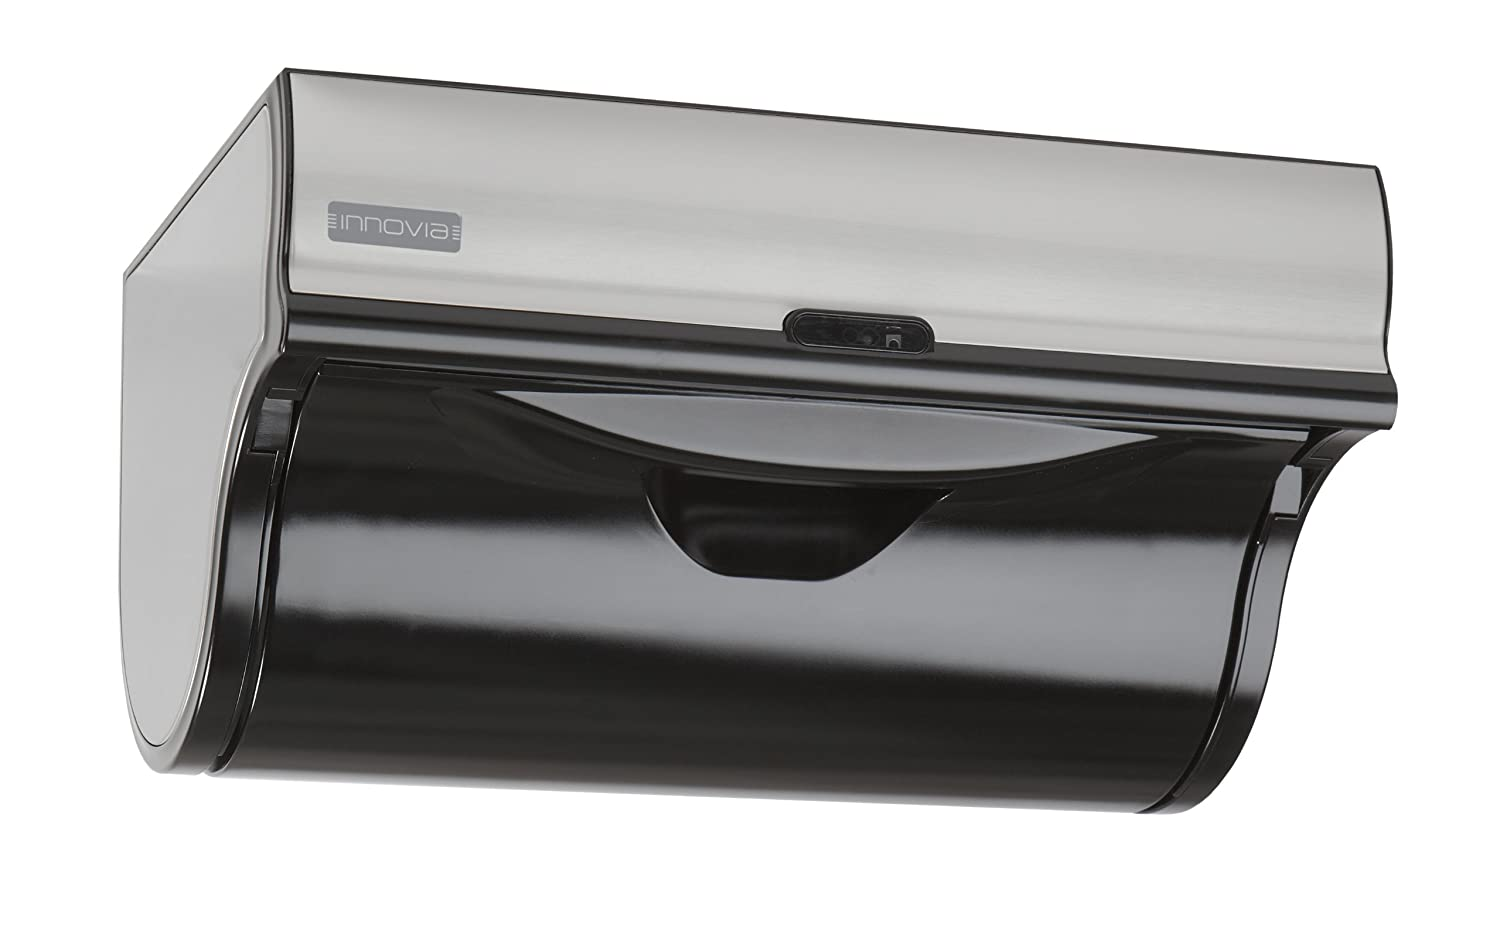 Automatic paper towel dispenser for home - Amazon Com Innovia Wb2 159b Automatic Paper Towel Dispenser Black Kitchen Dining